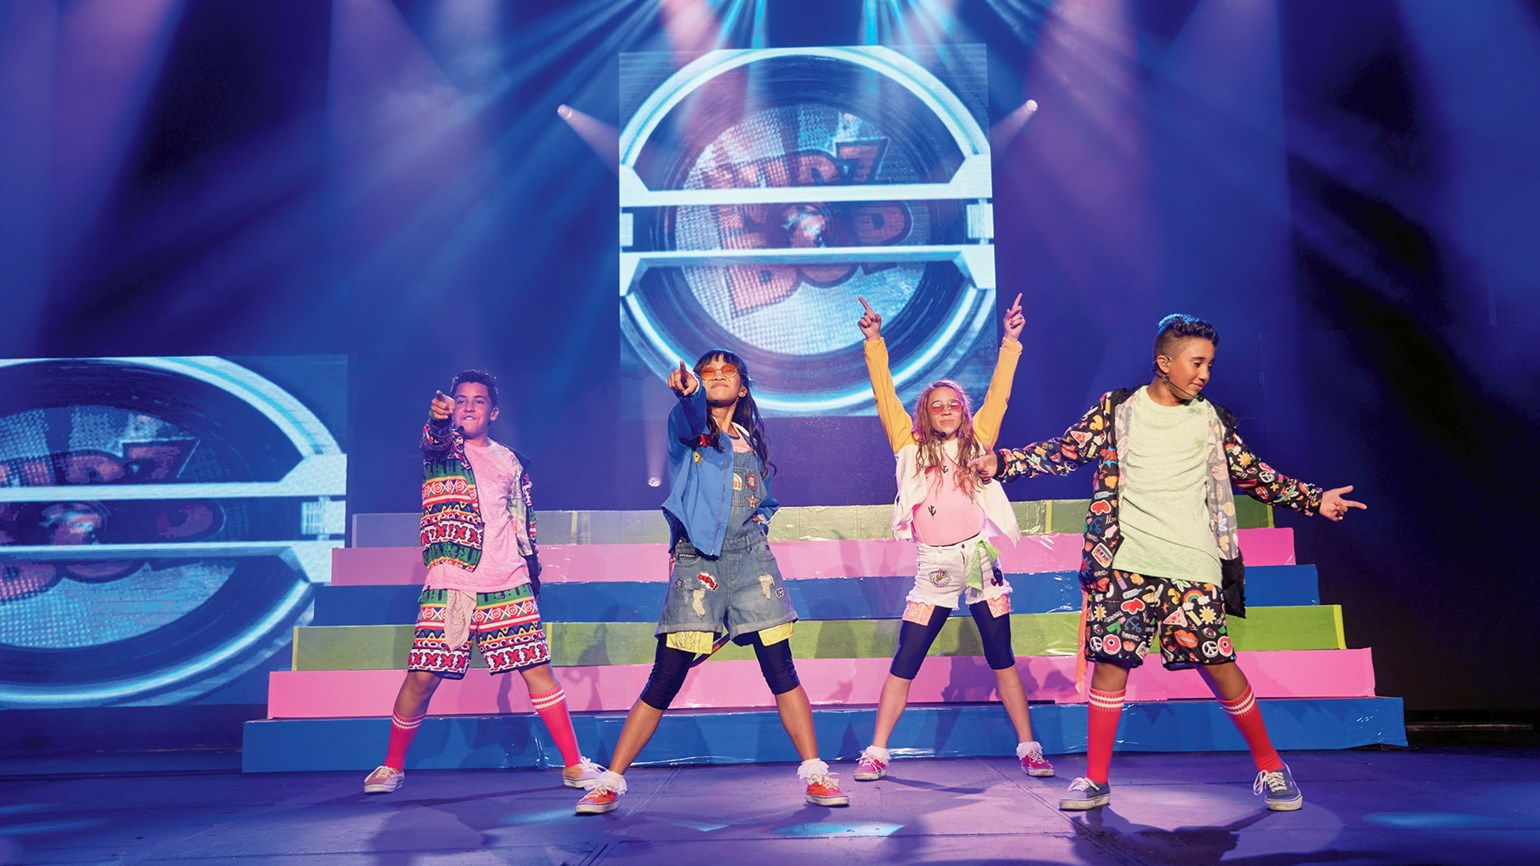 Youth gone wild: Hard Rock Punta Cana debuts Kidz Bop Experience